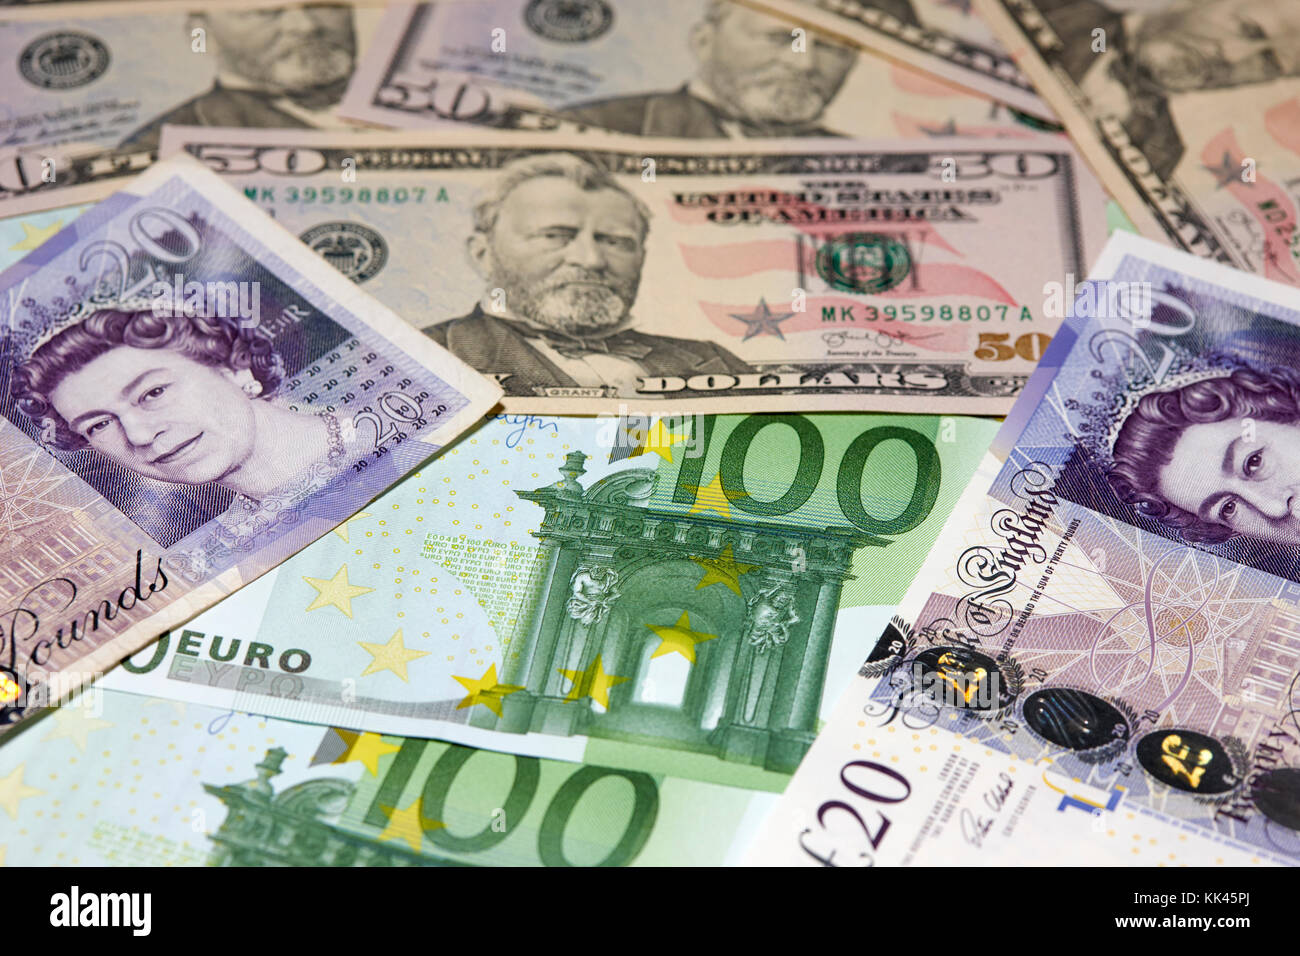 British Pounds Us Dollars And Euros Cash Notes